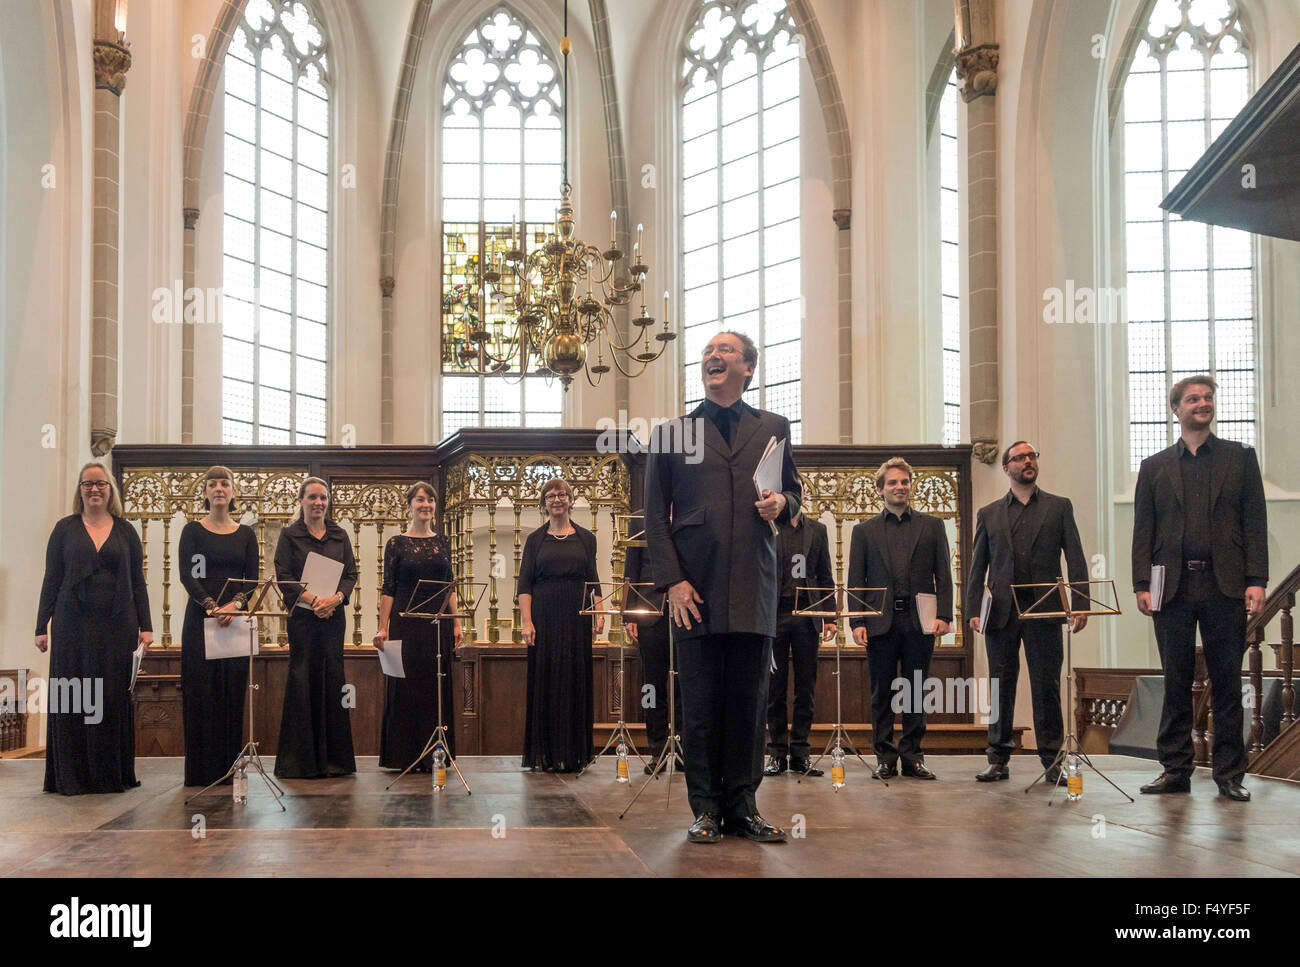 The Tallis Scholars with Peter Phillips on stage in a church. - Stock Image